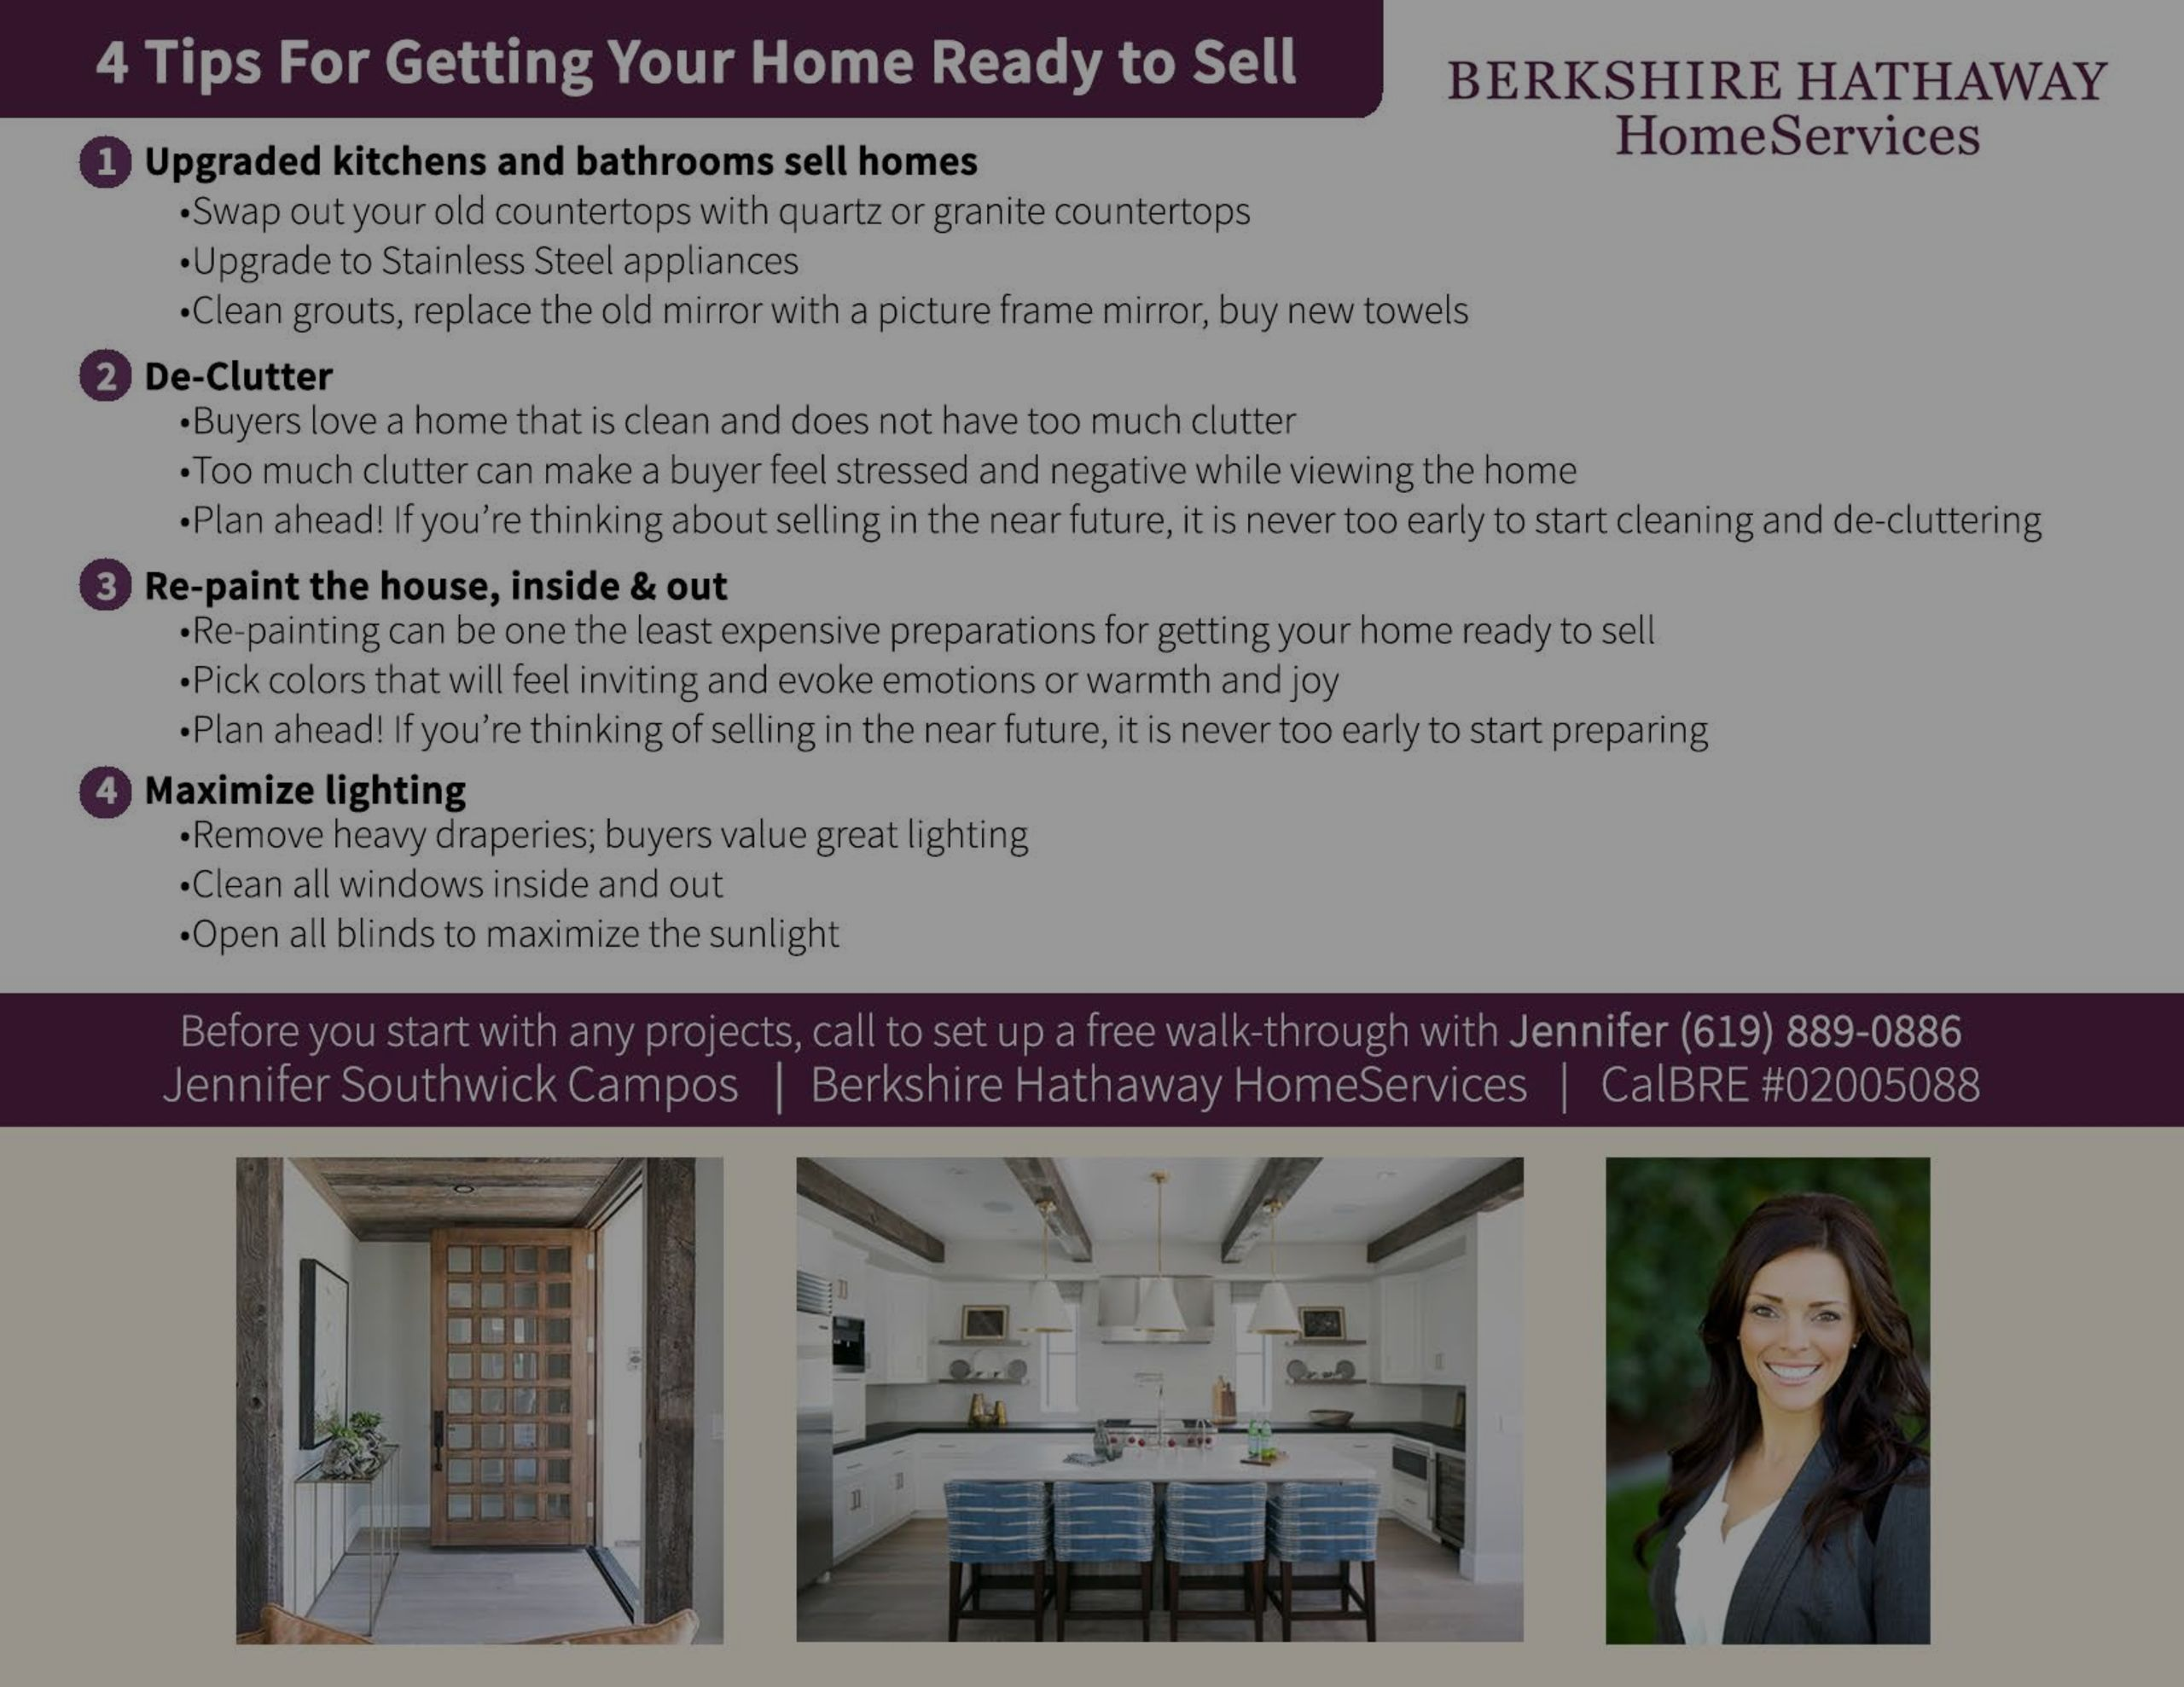 4 Tips to Getting Your Home Ready to Sell